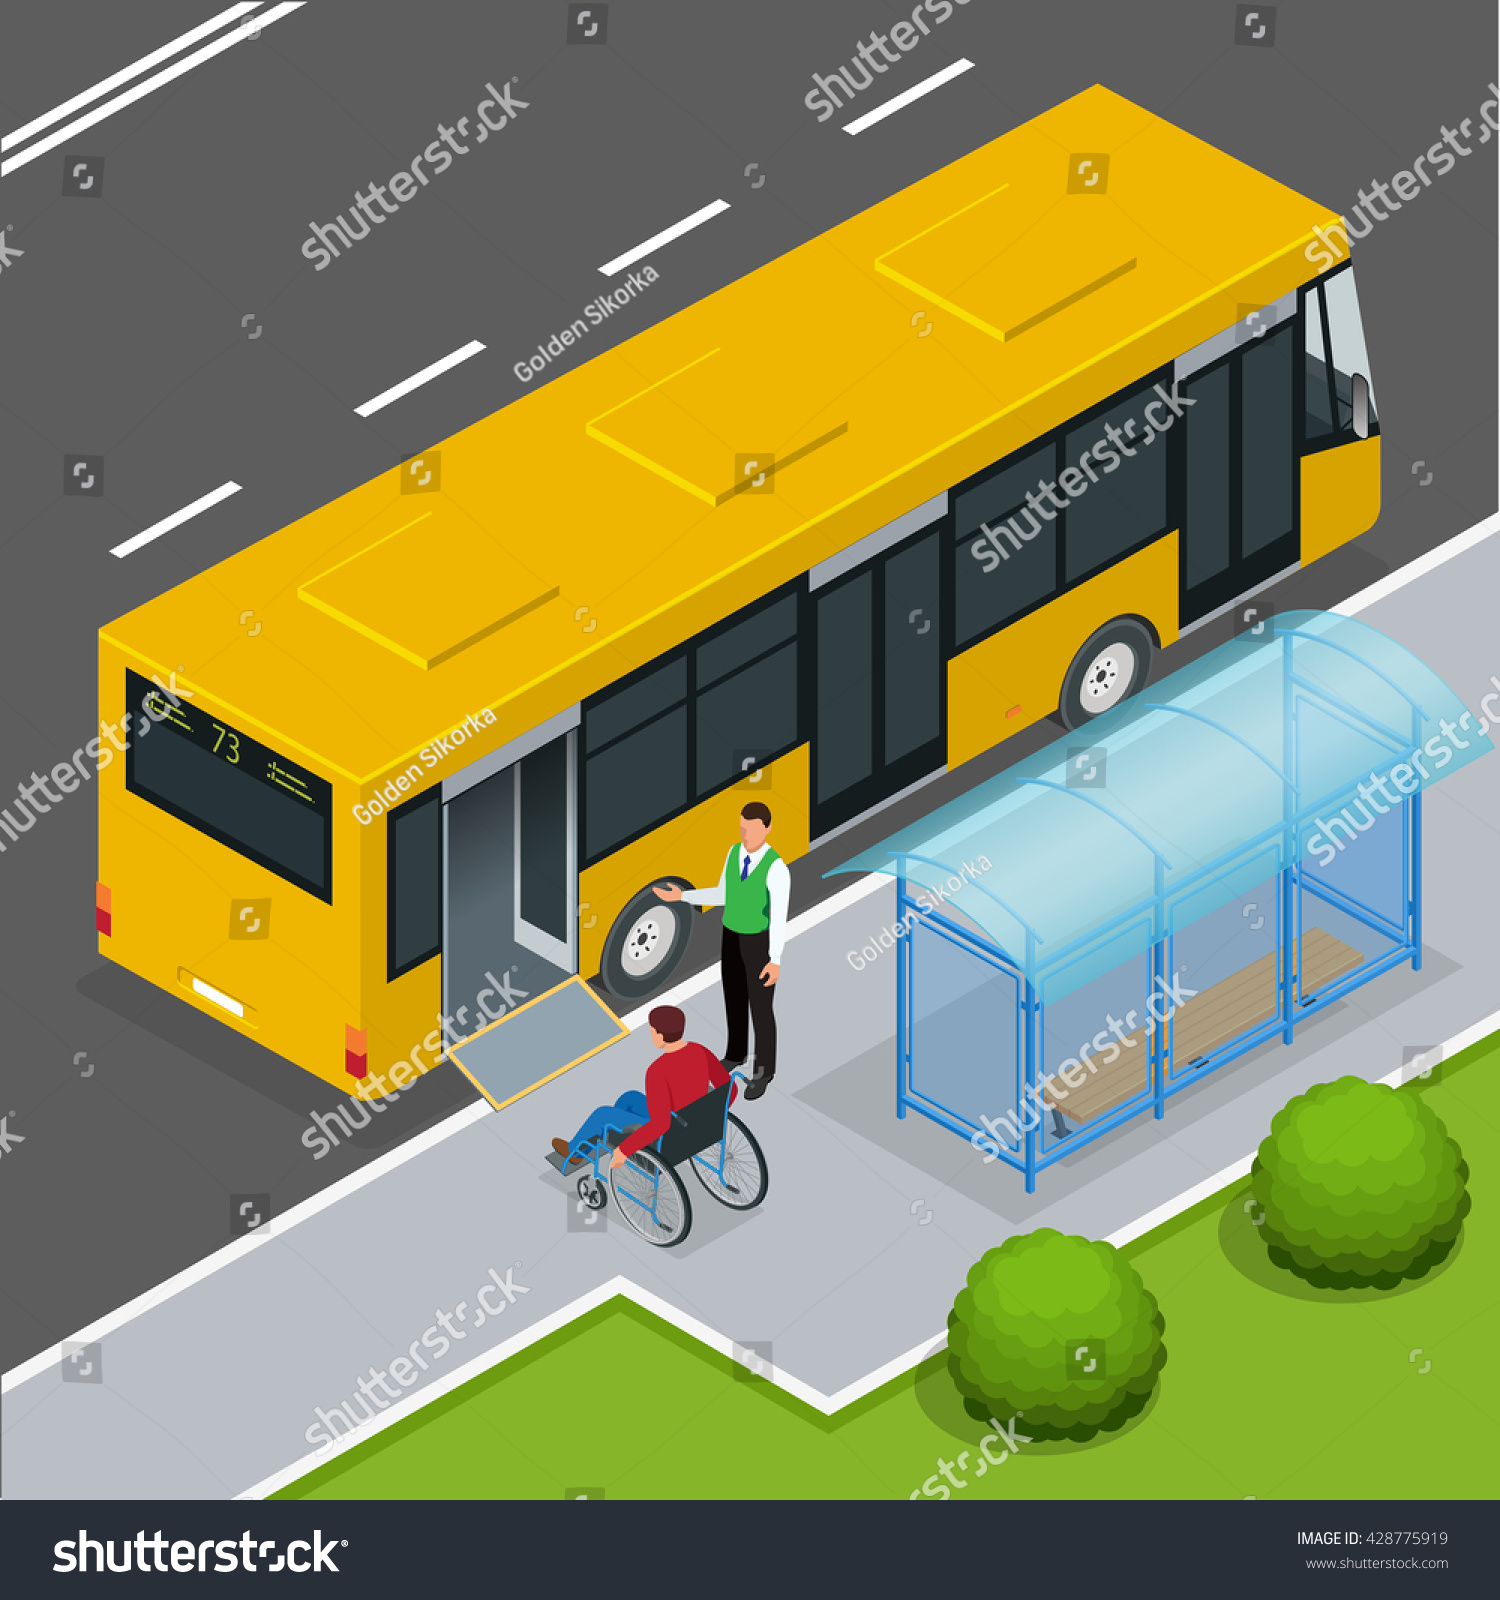 Access ramp for disabled persons and babies in a bus Man in a wheelchair at a bus stop Driver helping Man enter into the Bus via wheelchair ramp Flat 3D vector isometric illustration